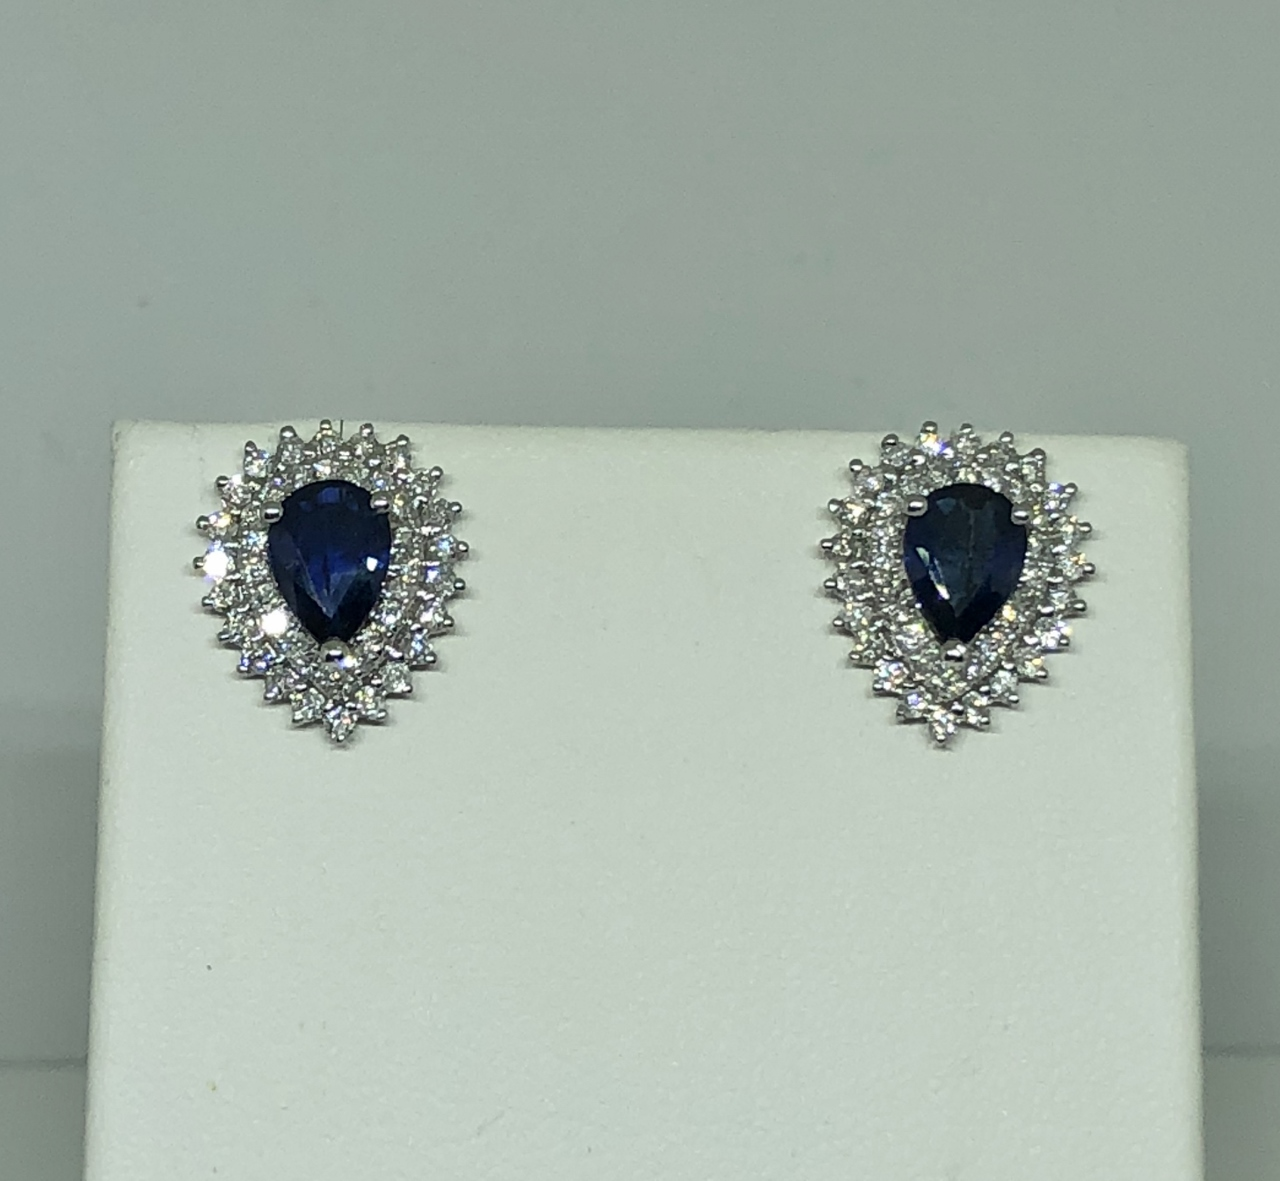 1.50 Carats Total Weight Sapphire Diamond Earrings